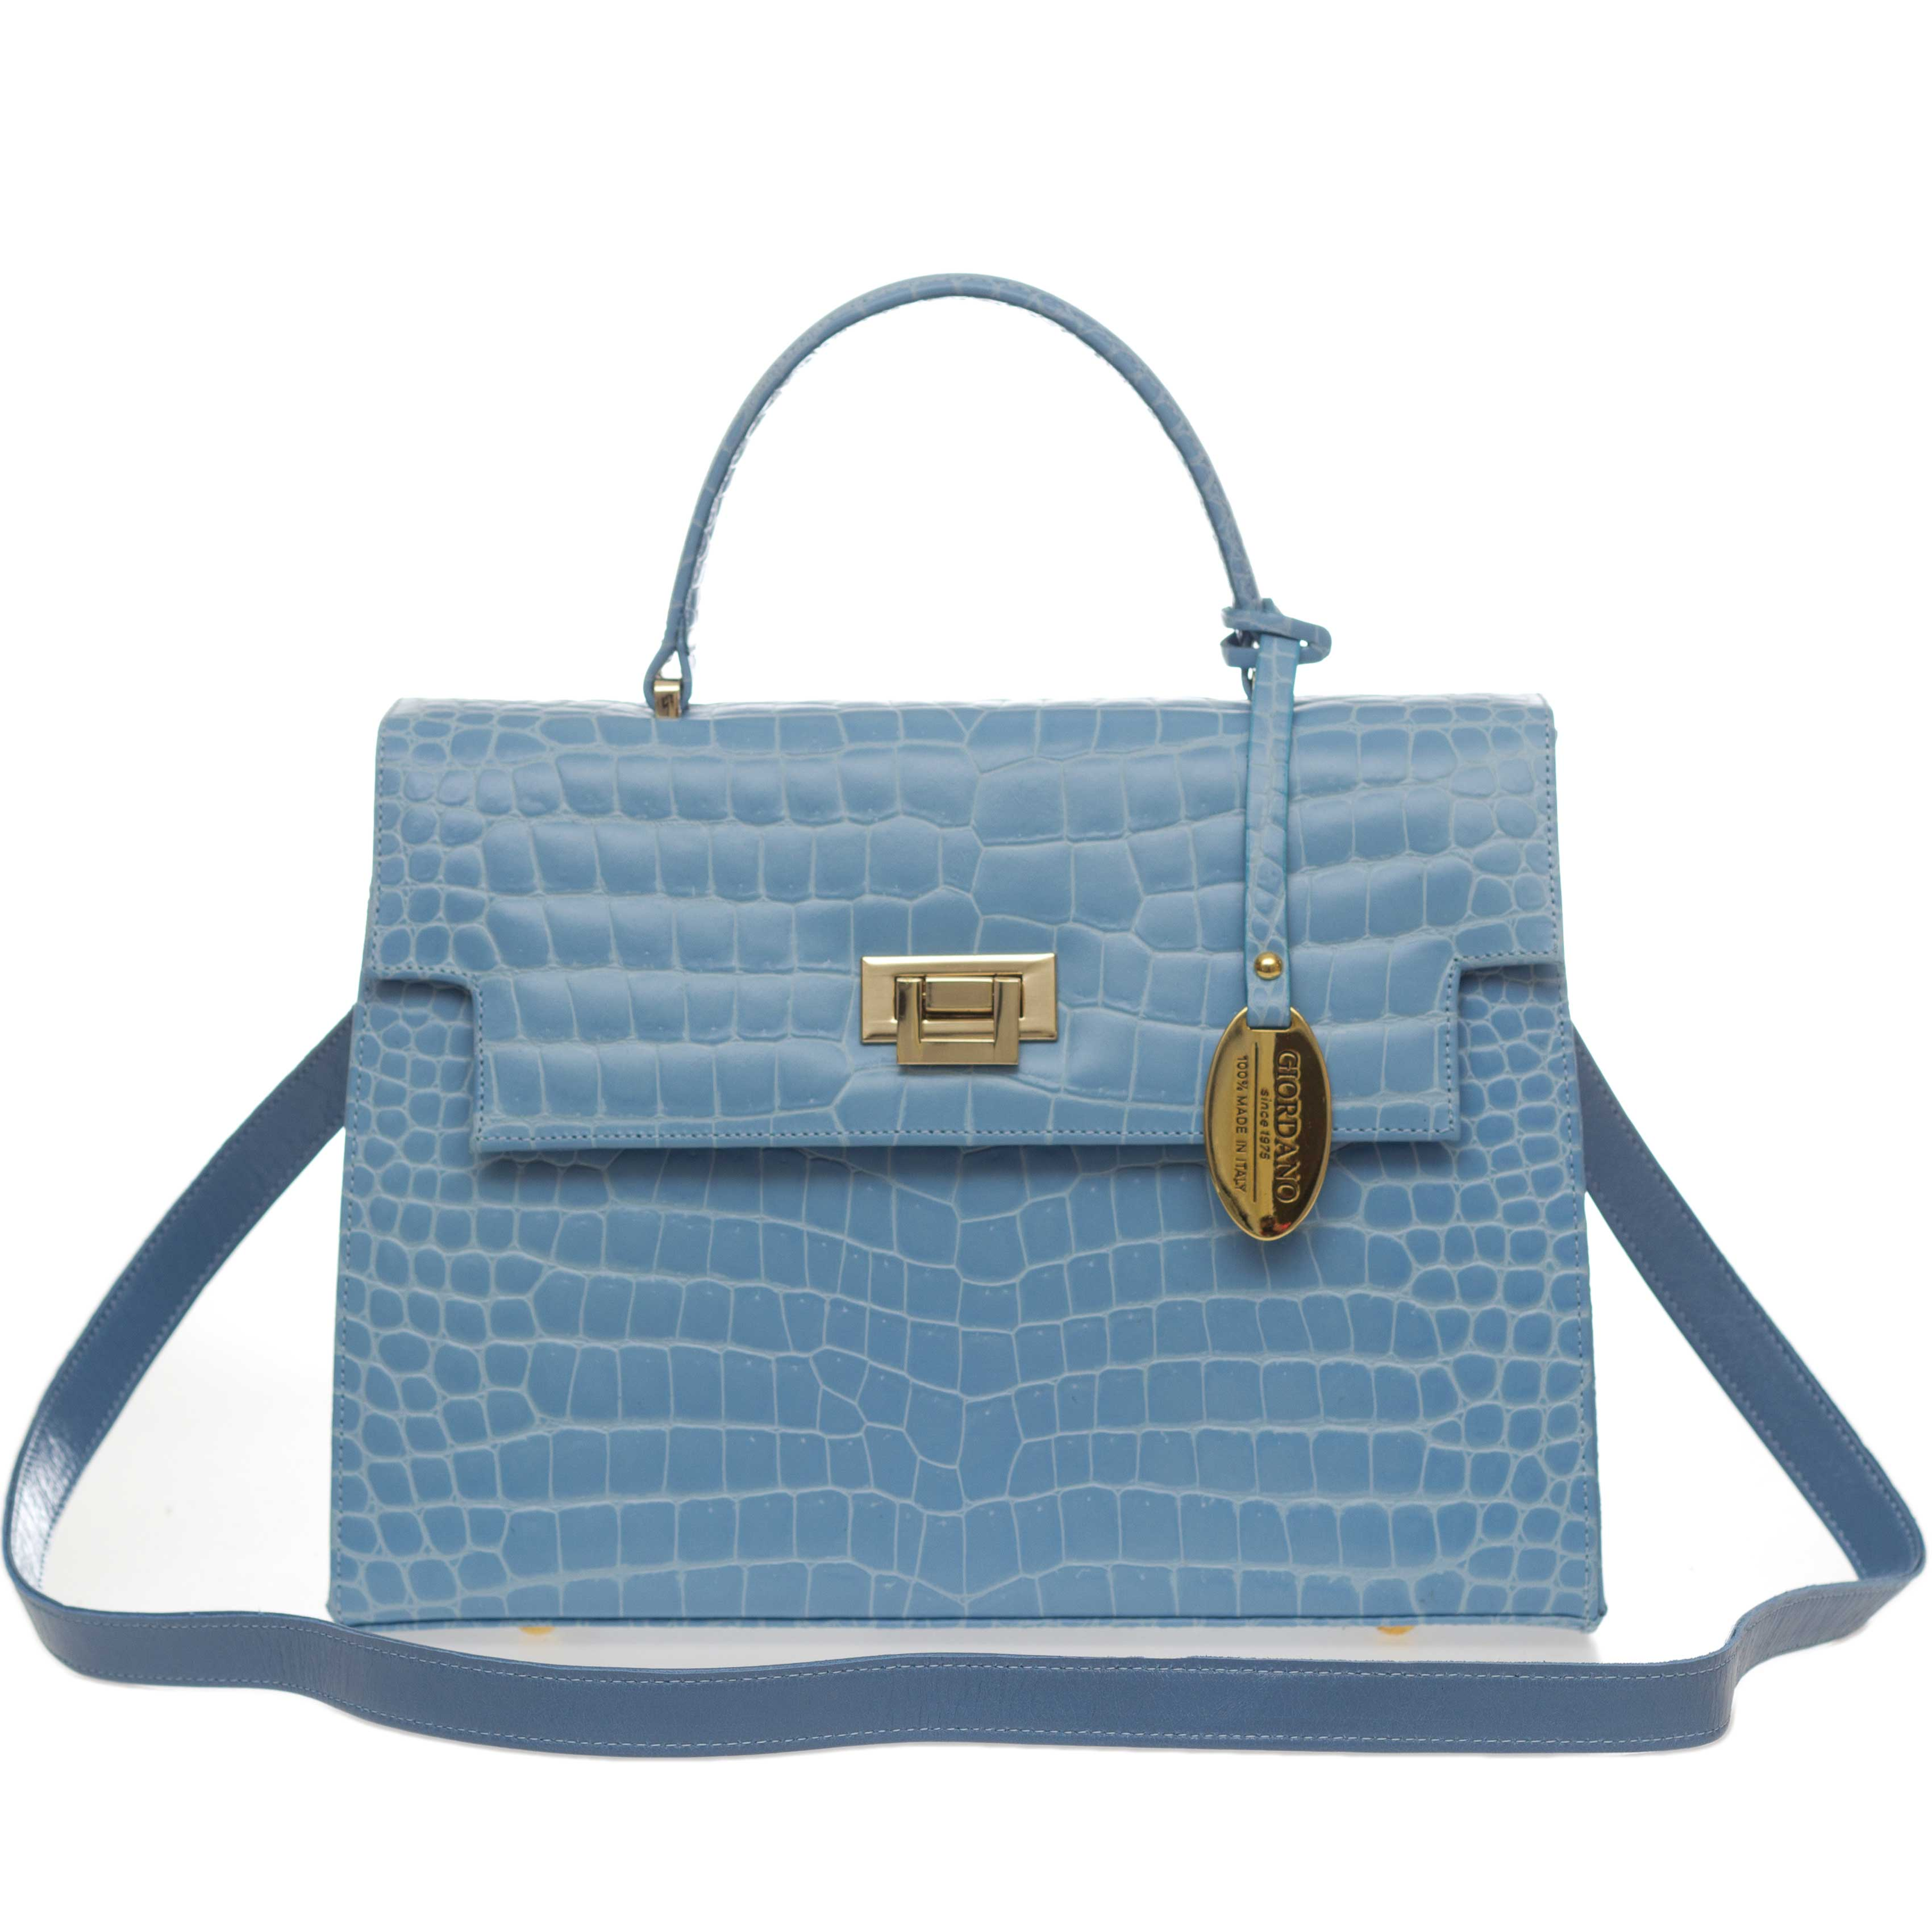 Giordano Italian Made Sky Blue Crocodile Embossed Leather Purse